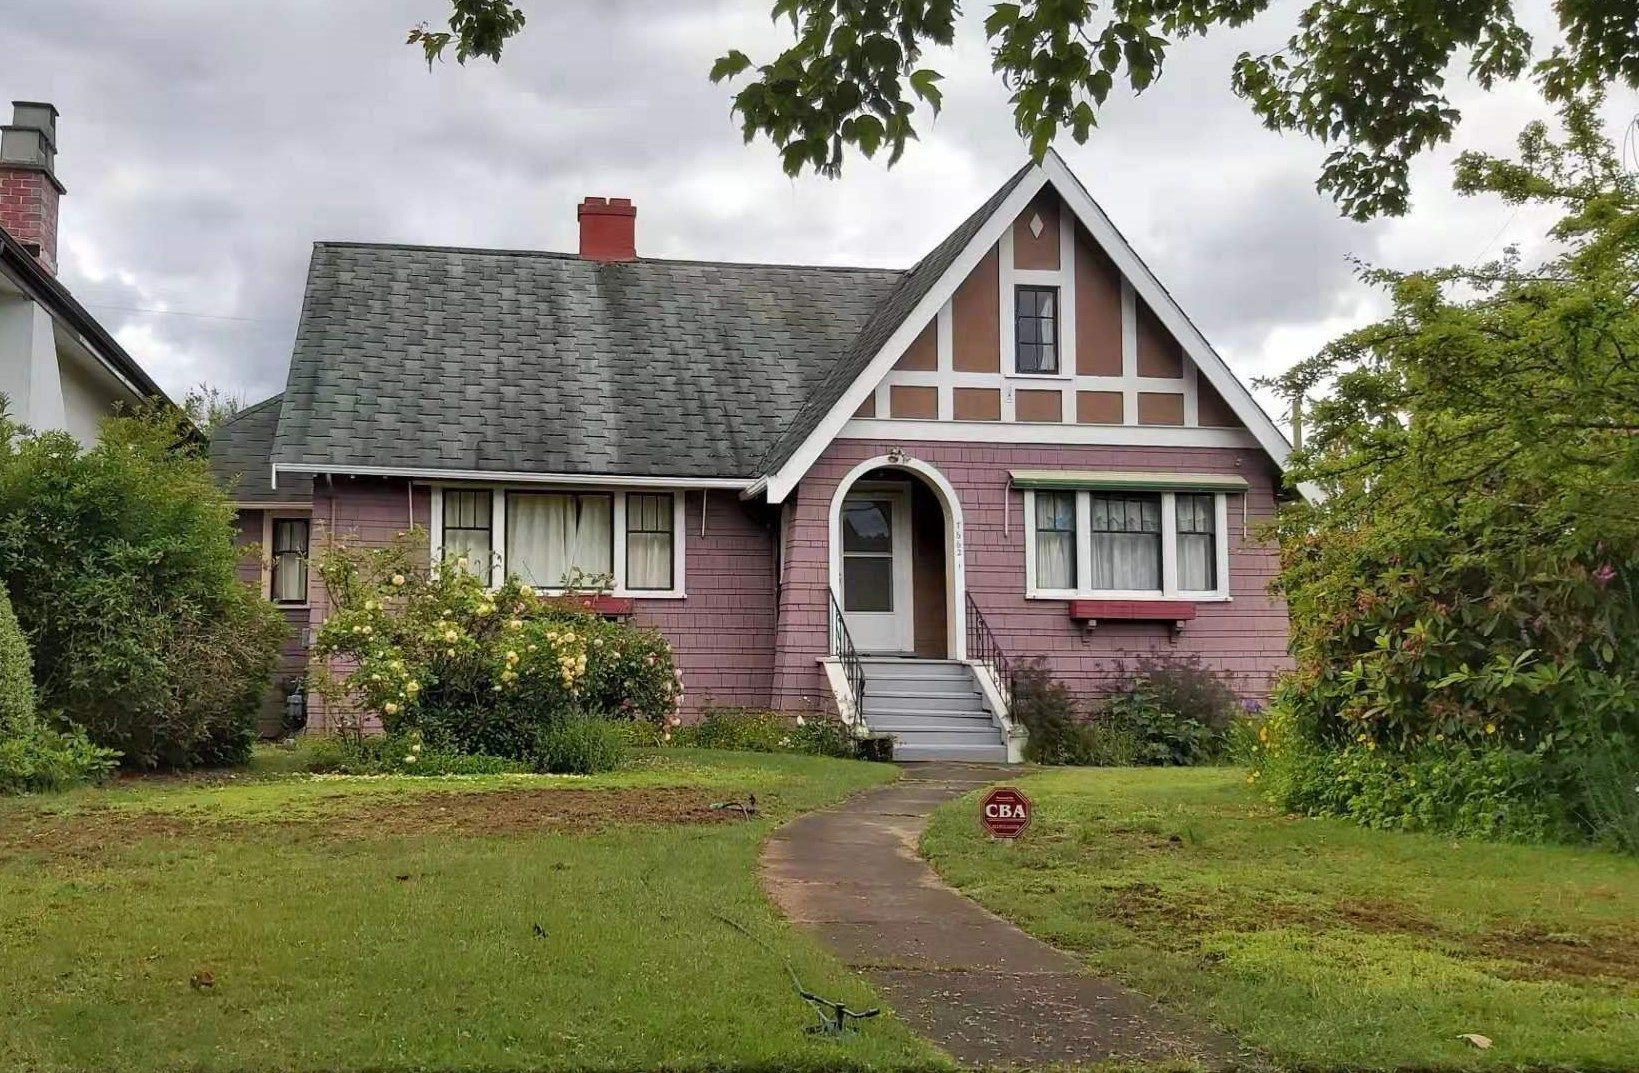 Main Photo: 7662 MONTCALM Street in Vancouver: South Granville House for sale (Vancouver West)  : MLS®# R2578724